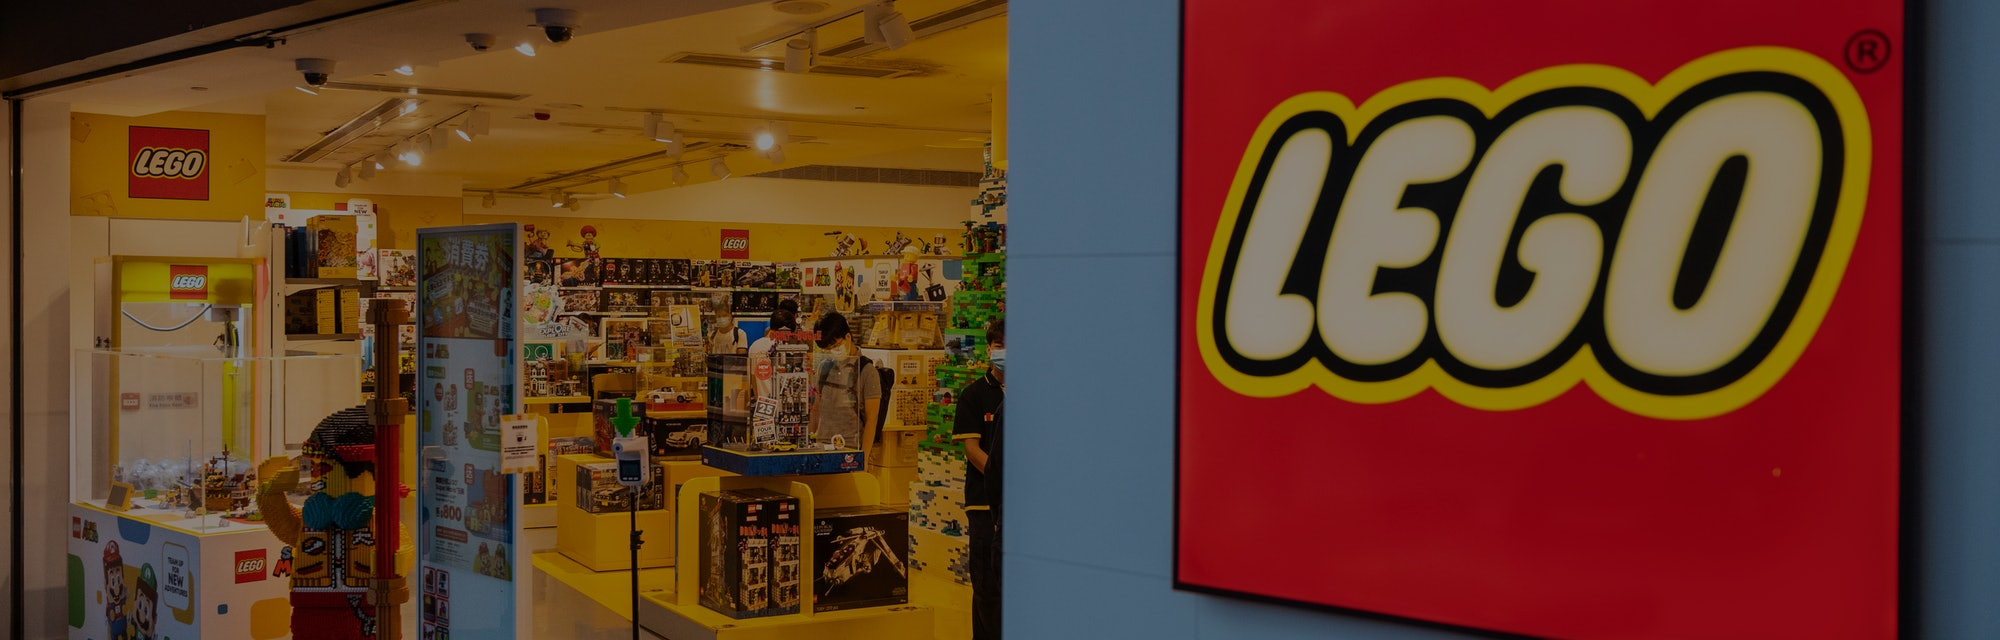 HONG KONG, CHINA - 2021/08/23: Danish toy brand Lego official store seen in Hong Kong. (Photo by Bud...